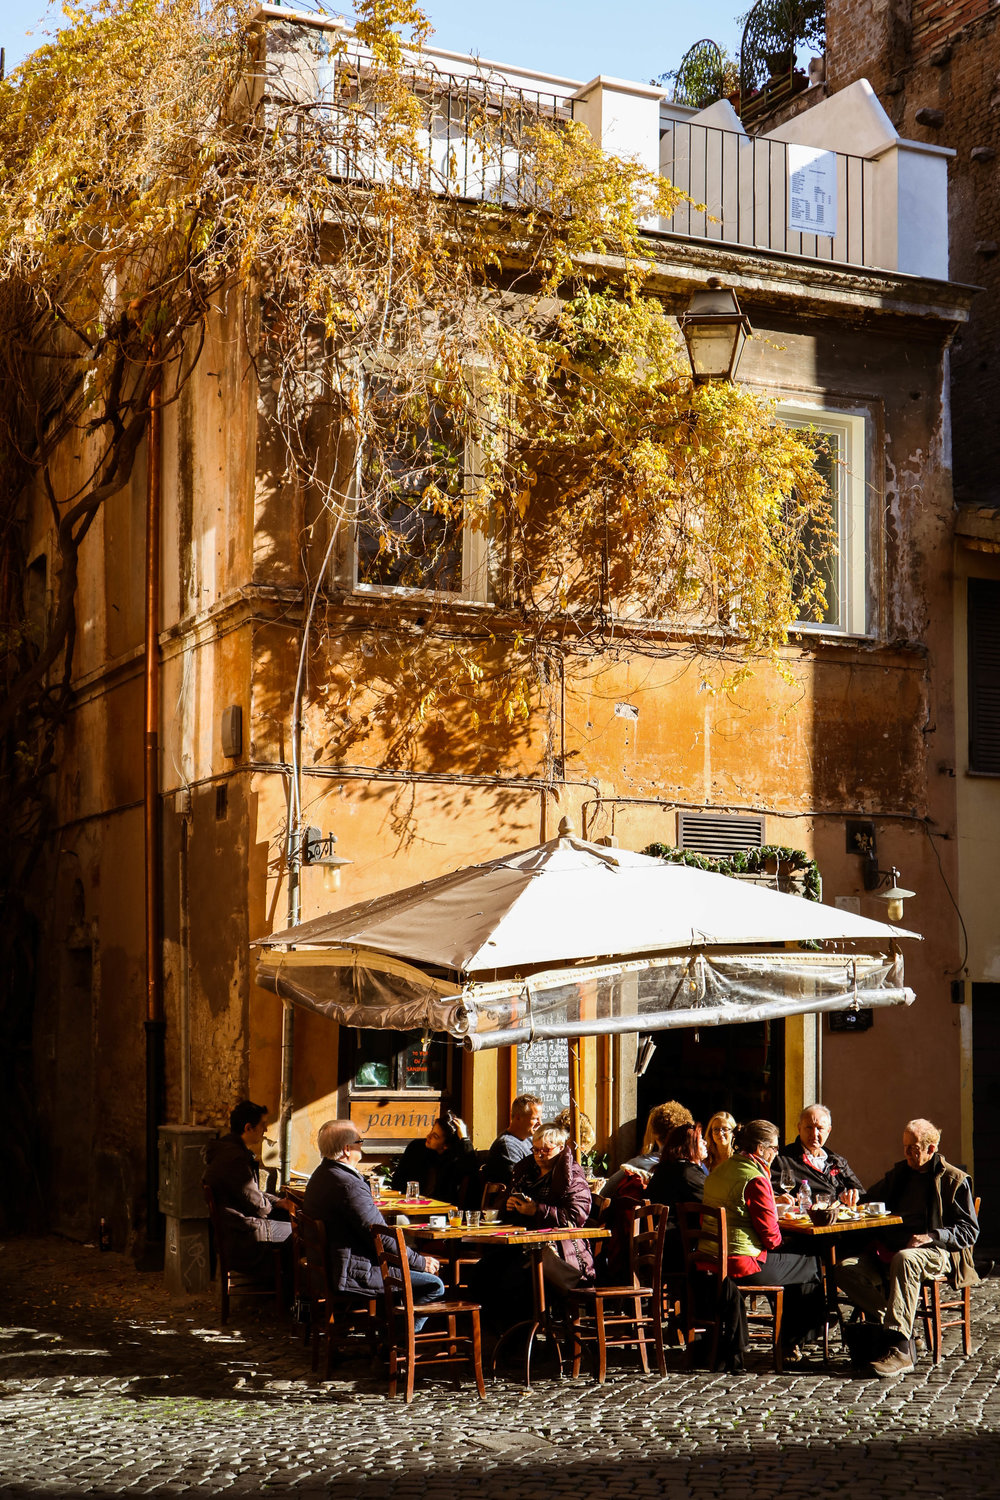 An afternoon in Trastevere